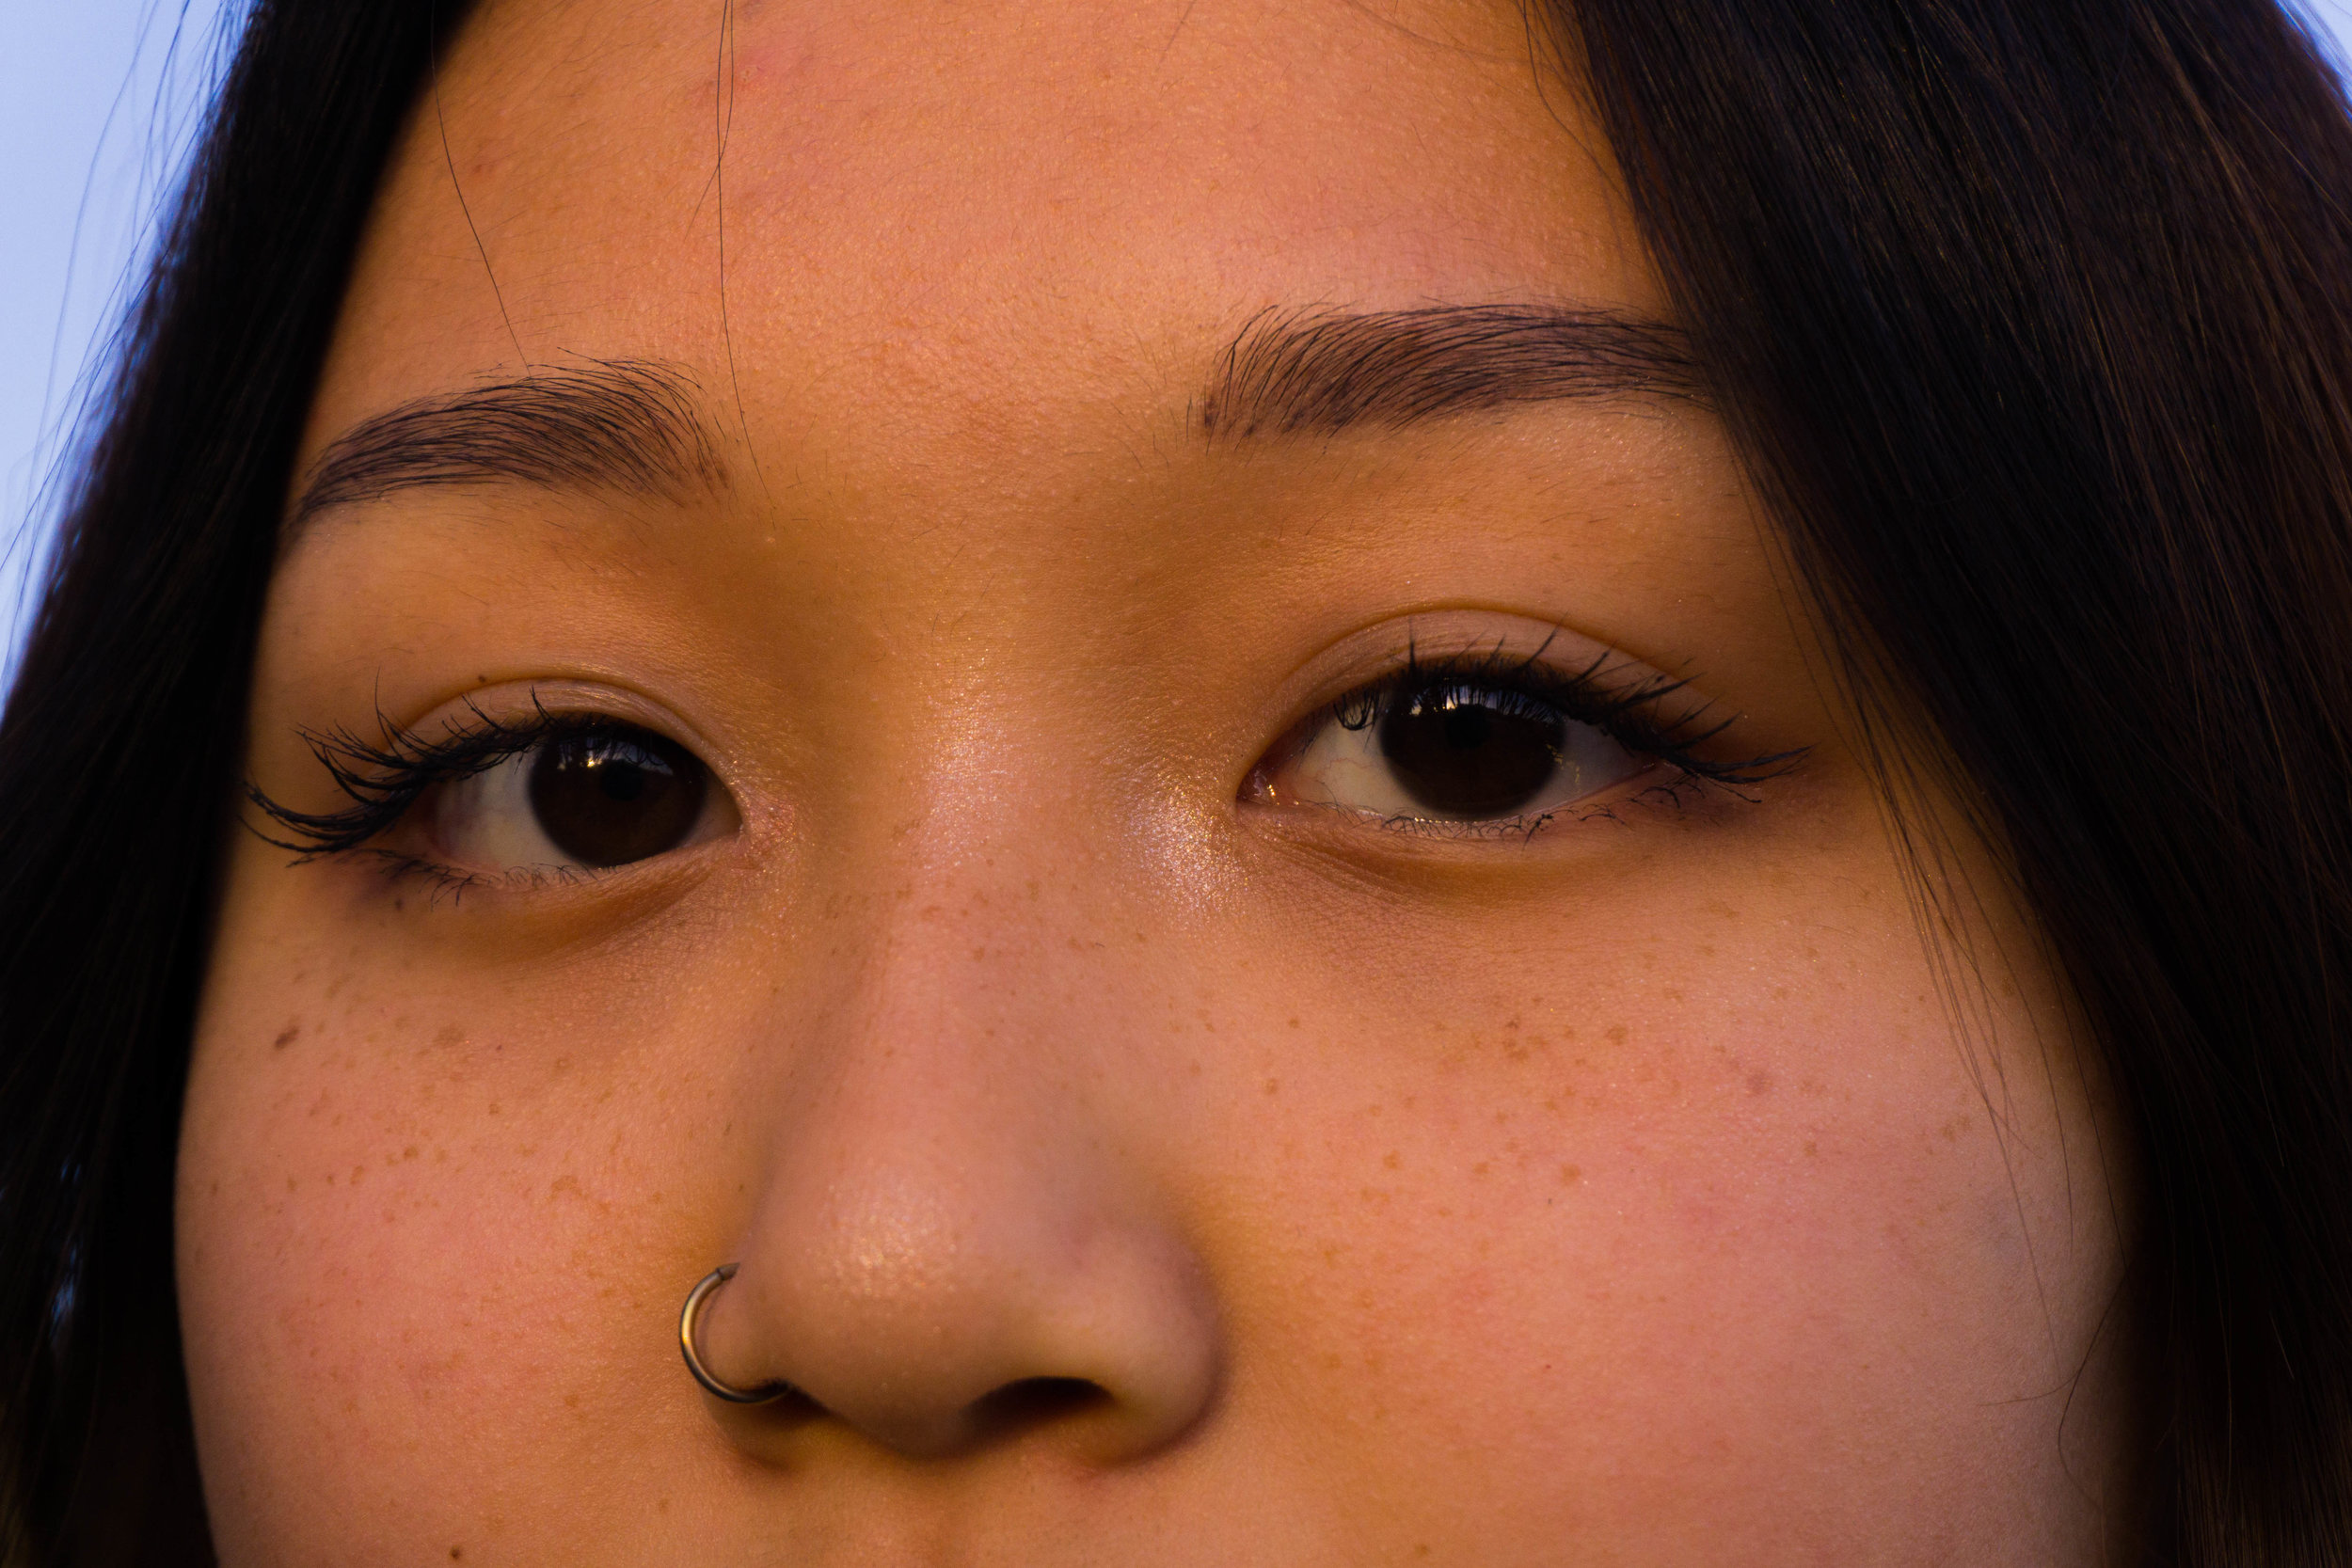 The same highlighter has been applied to the tip of the nose, the inner corner of the eyes, and the top corner of the brow bone where the eyebrow is angled.